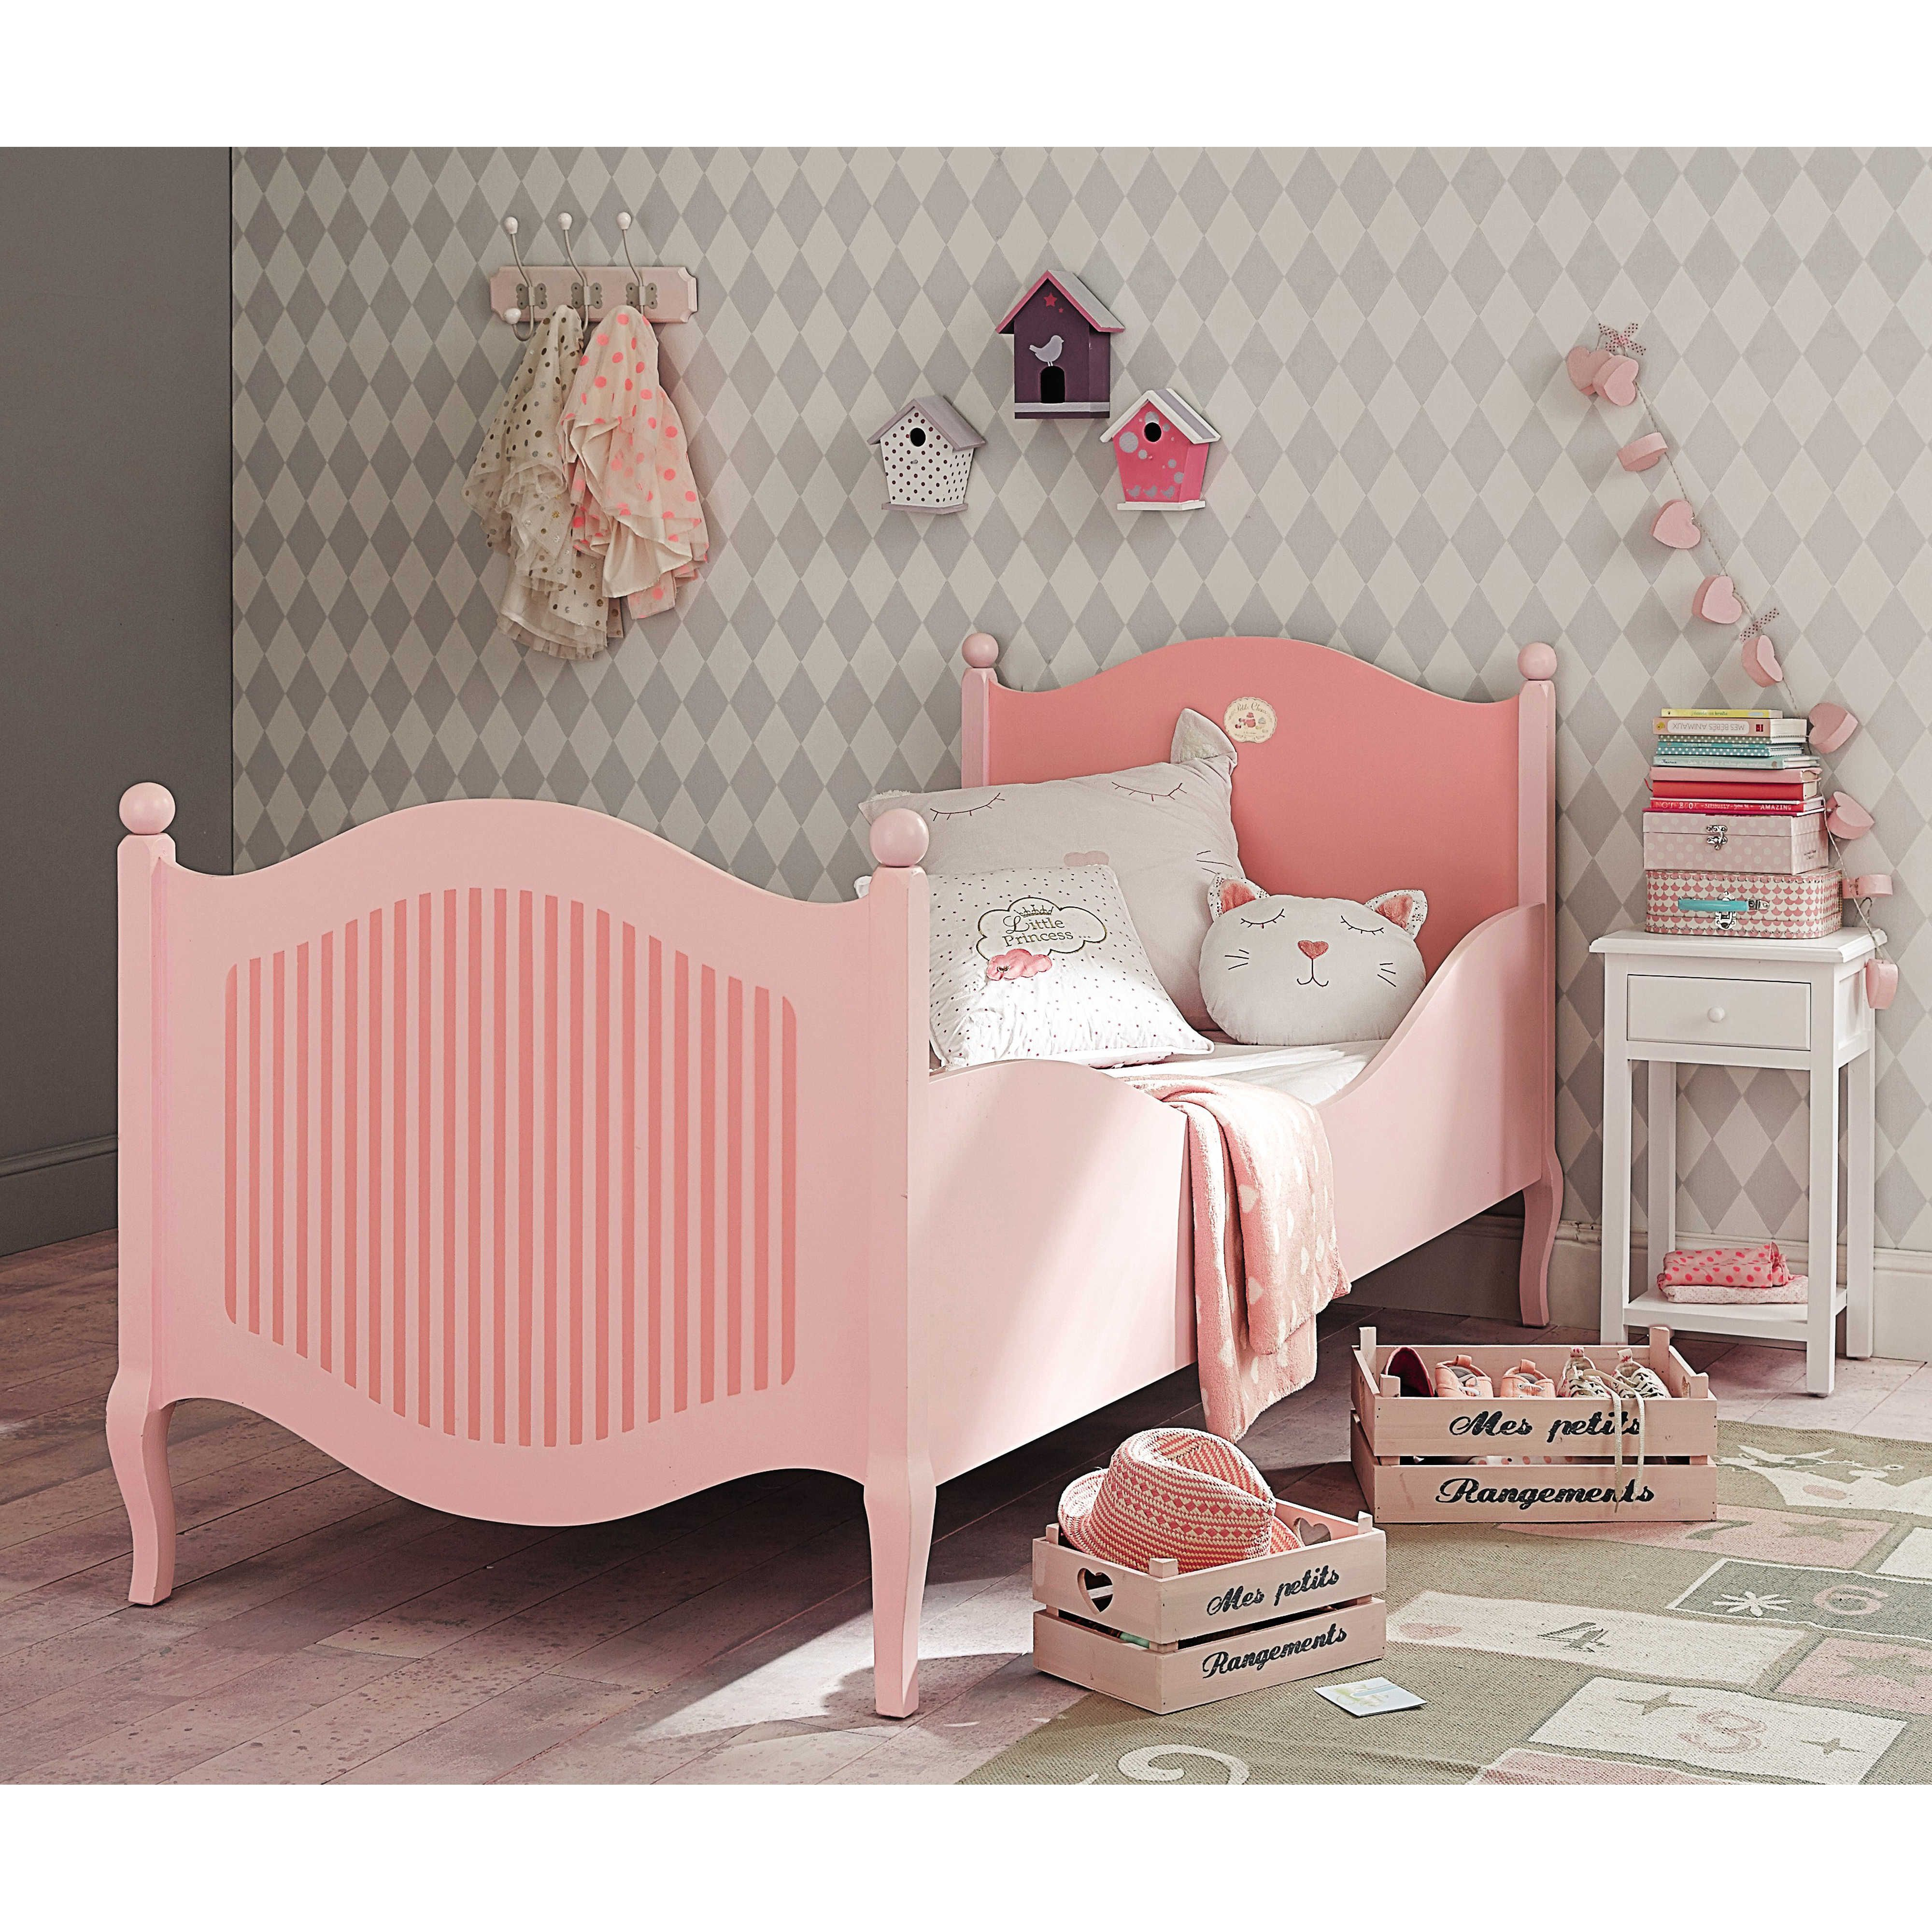 lit enfant 90 x 190 cm en bois rose et blanc gourmandise maisons du monde chambre d 39 enfant. Black Bedroom Furniture Sets. Home Design Ideas